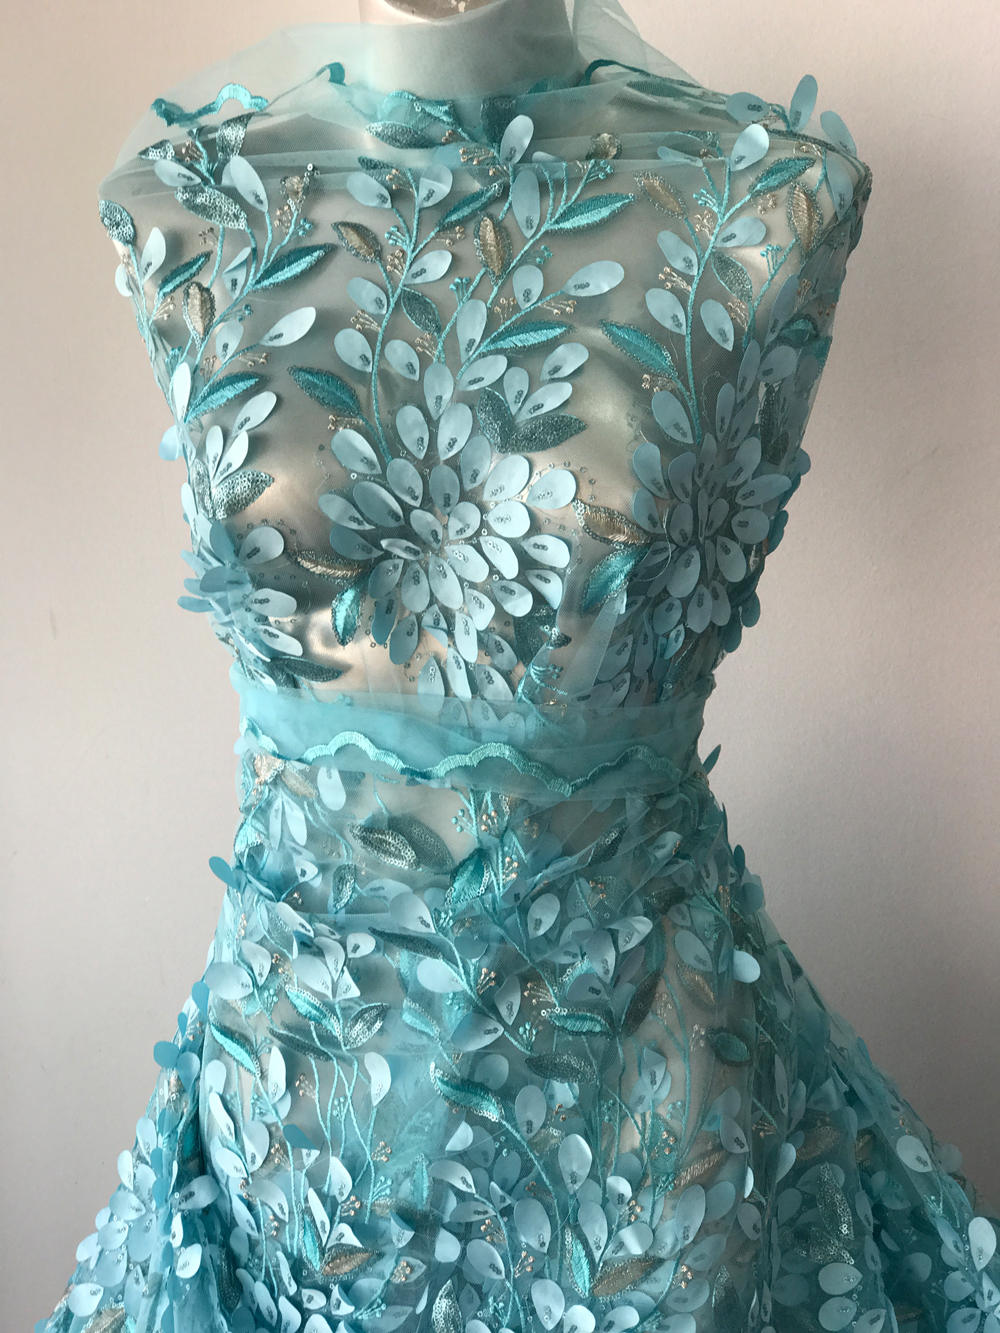 Turquoise Blue Silver Lace Fabric Embroidery 3d Laser Cut